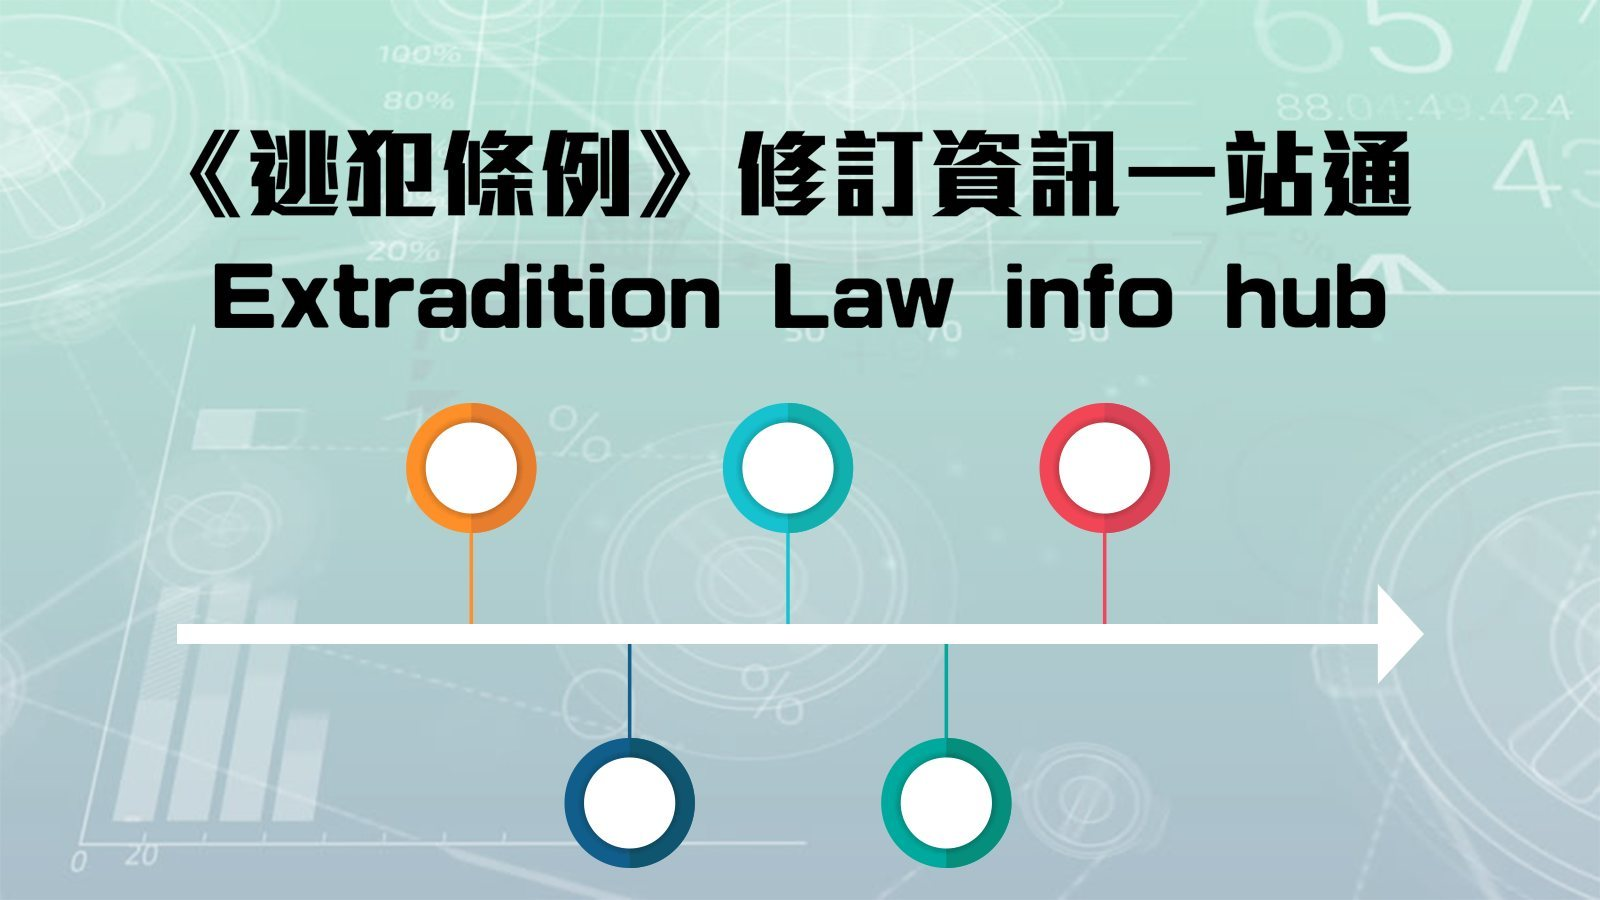 Extradition Law News Timeline